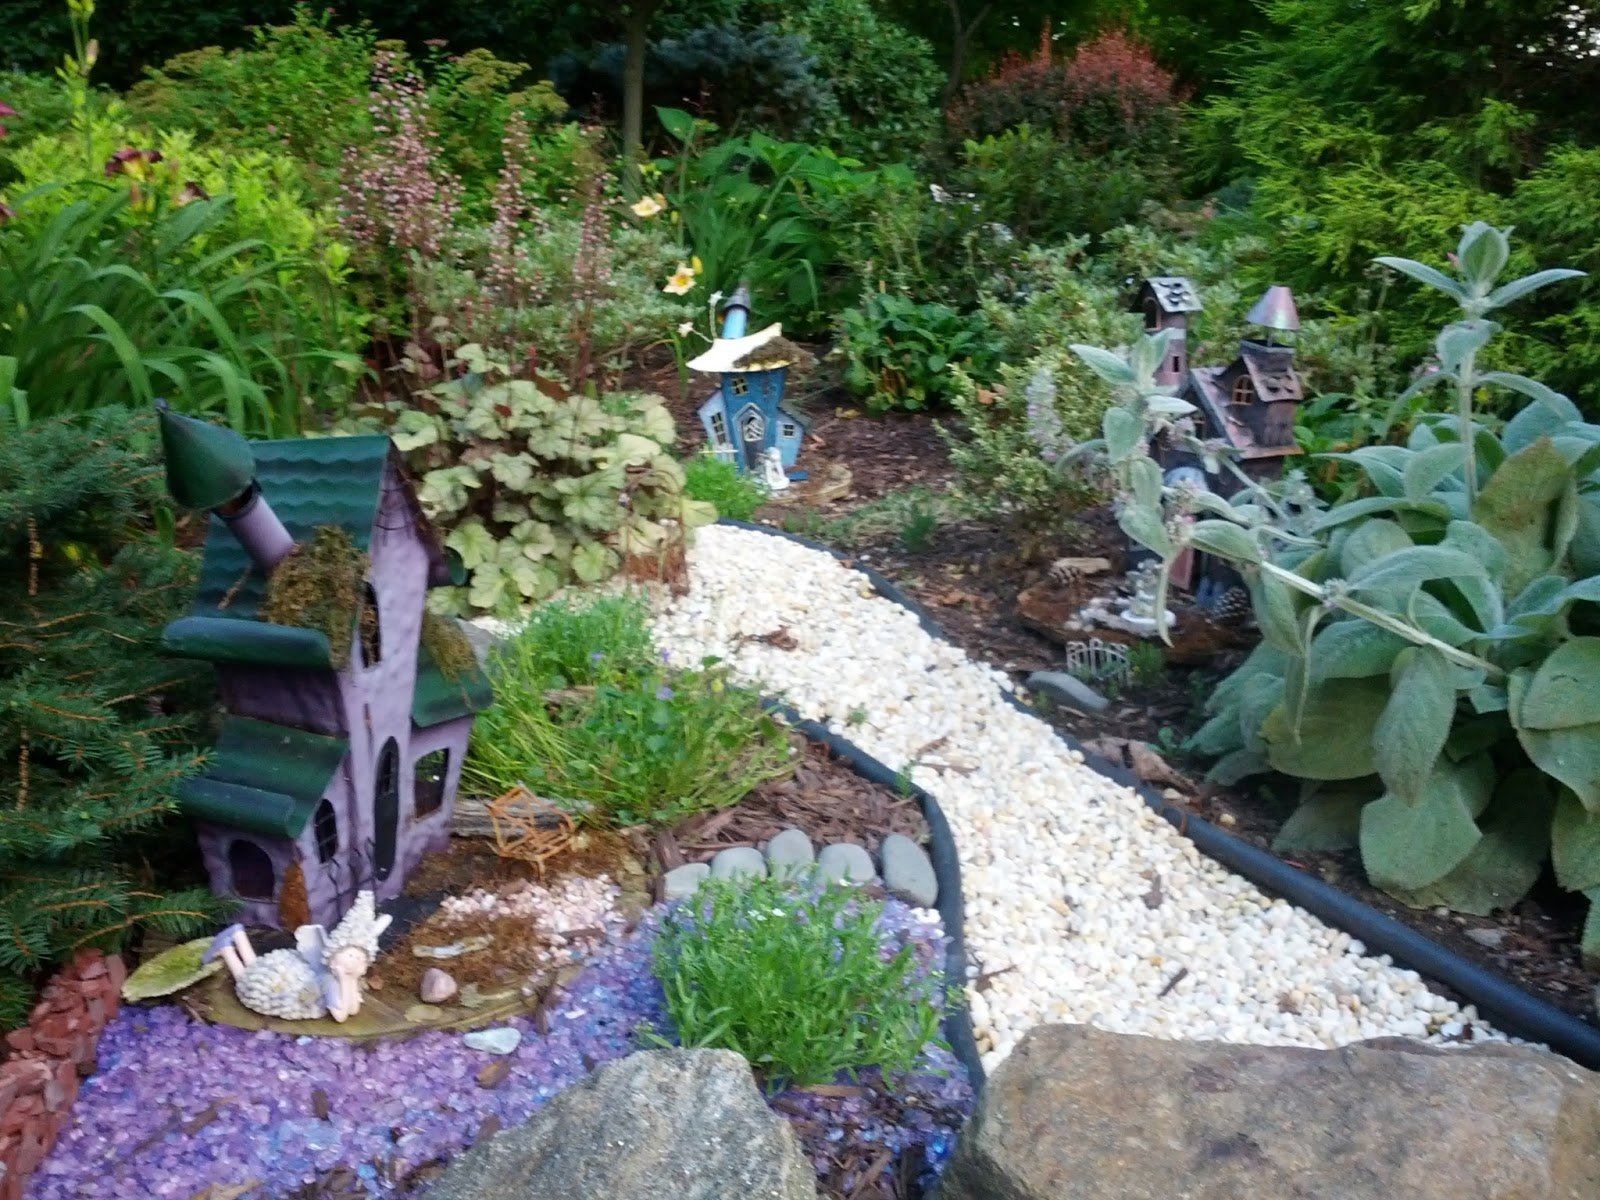 east hampton ct belltown garden club fairy garden tour in colchester